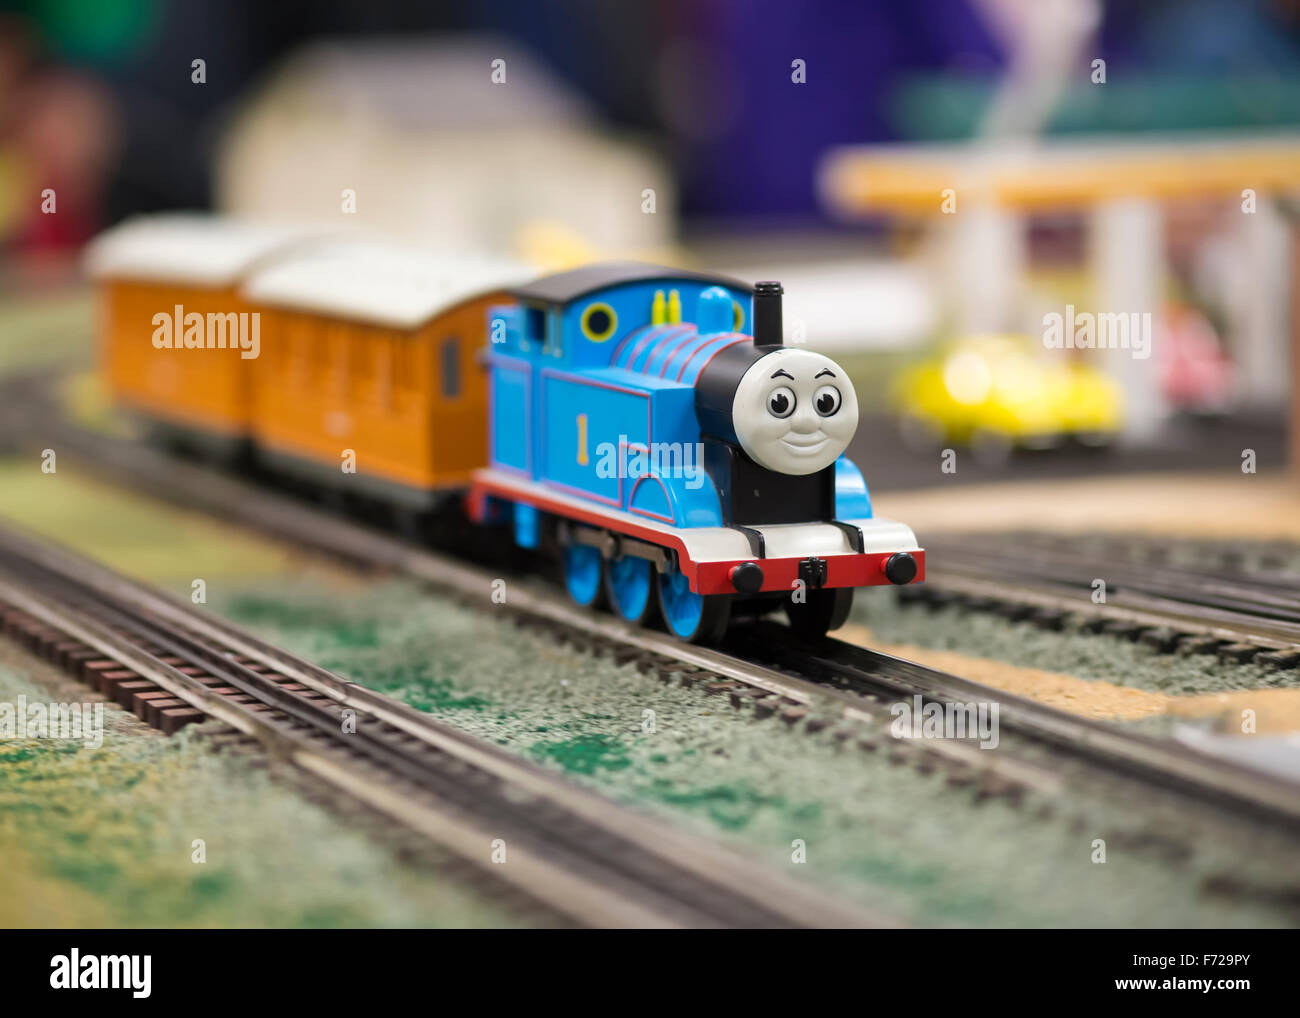 Bethpage, New York, USA. 22nd November 2015. Thomas the Train, a popular children's character, is operating - Stock Image